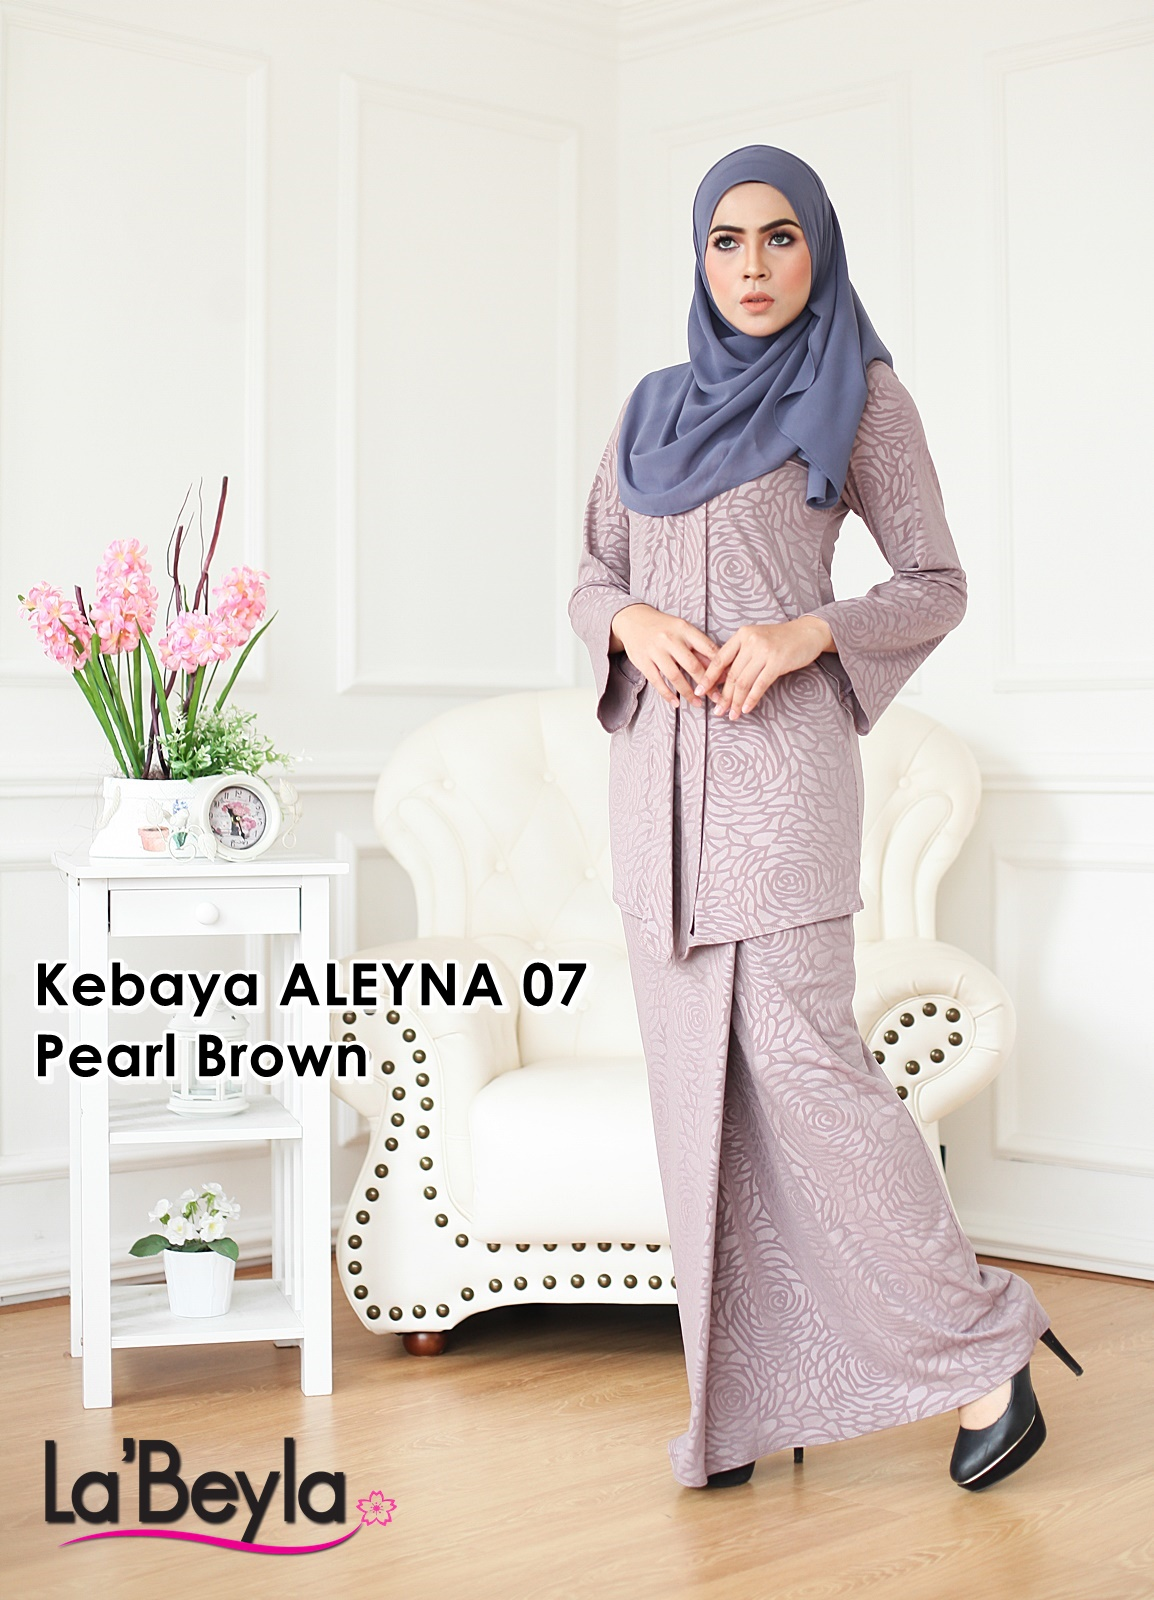 Kebaya Aleyna 07 - Pearl Brown